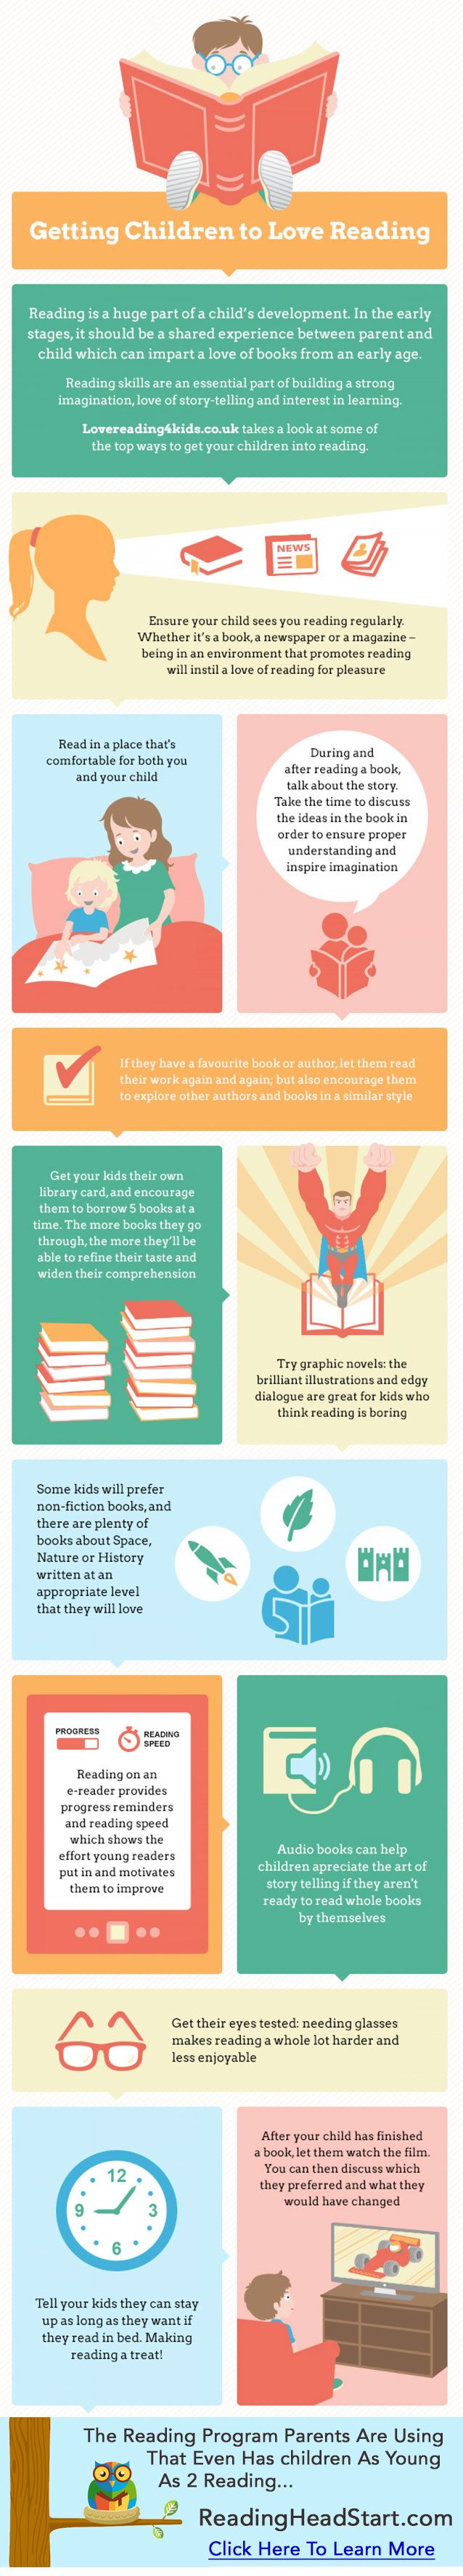 Getting Children to Love Reading infographic . Getting your child to love reading at early age is really important. Let's make it easy for your kid to learn reading. #teachchildrentoread #teachreading #childrenbooks